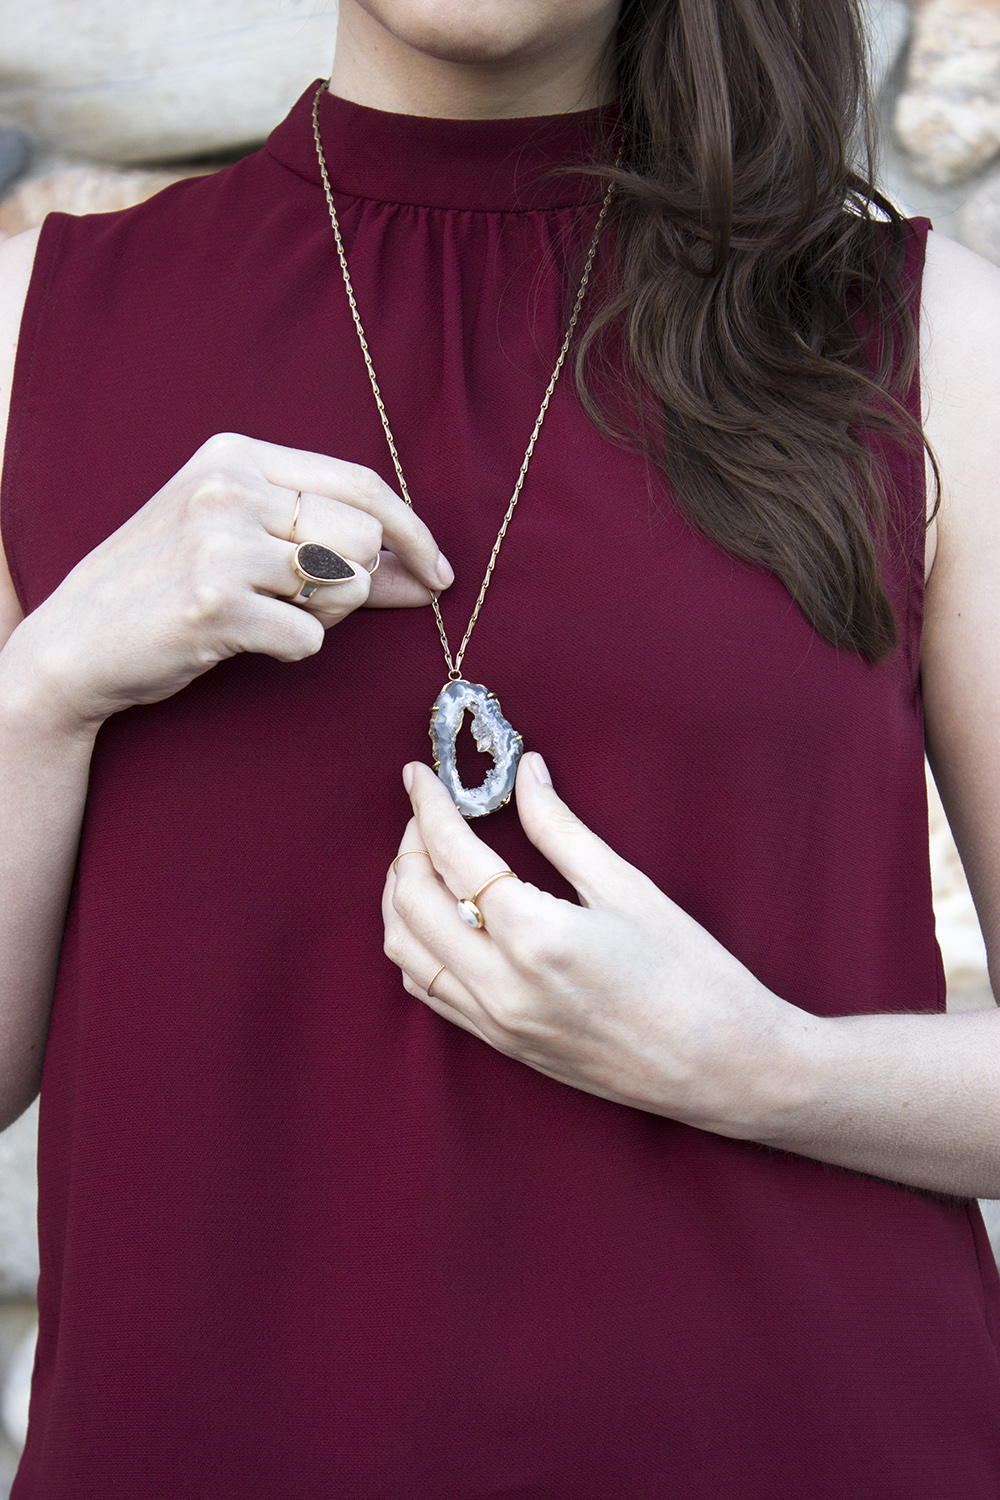 UncommonGoods geode necklace outfit Oco Geode Pendant